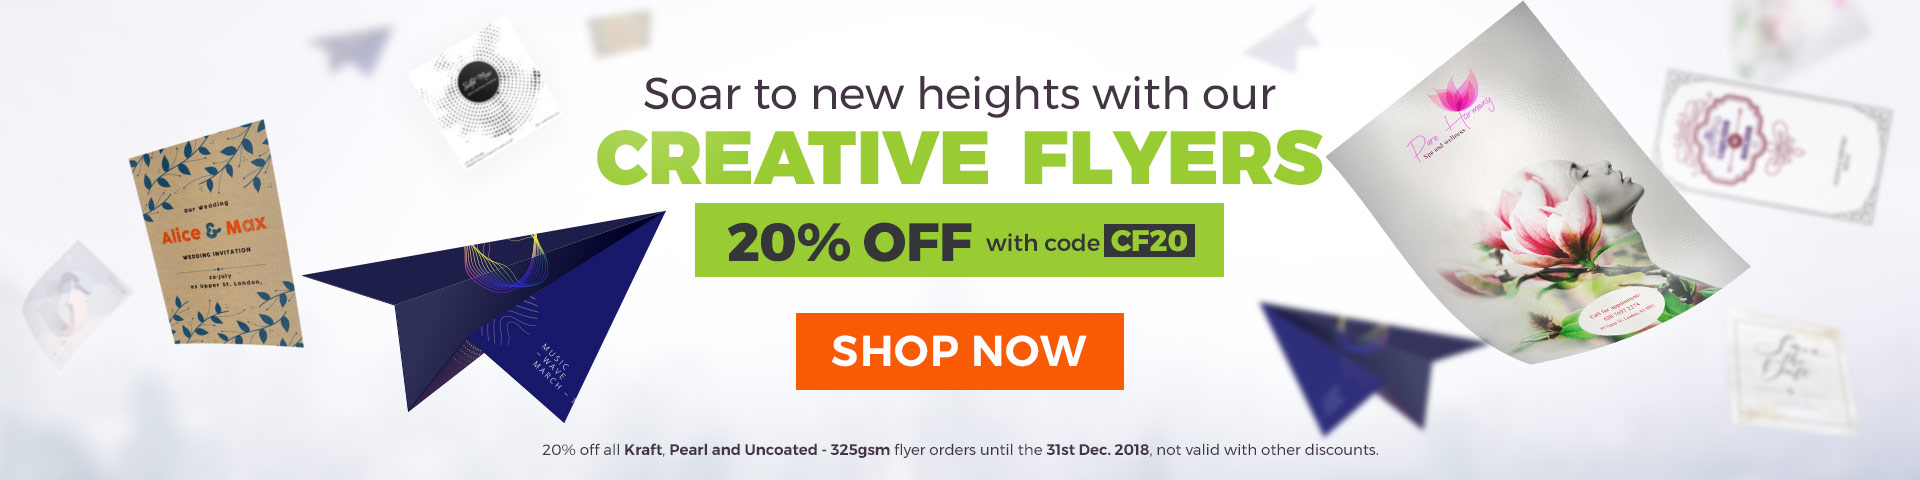 Creative Flyers with 20% off discount code CF20